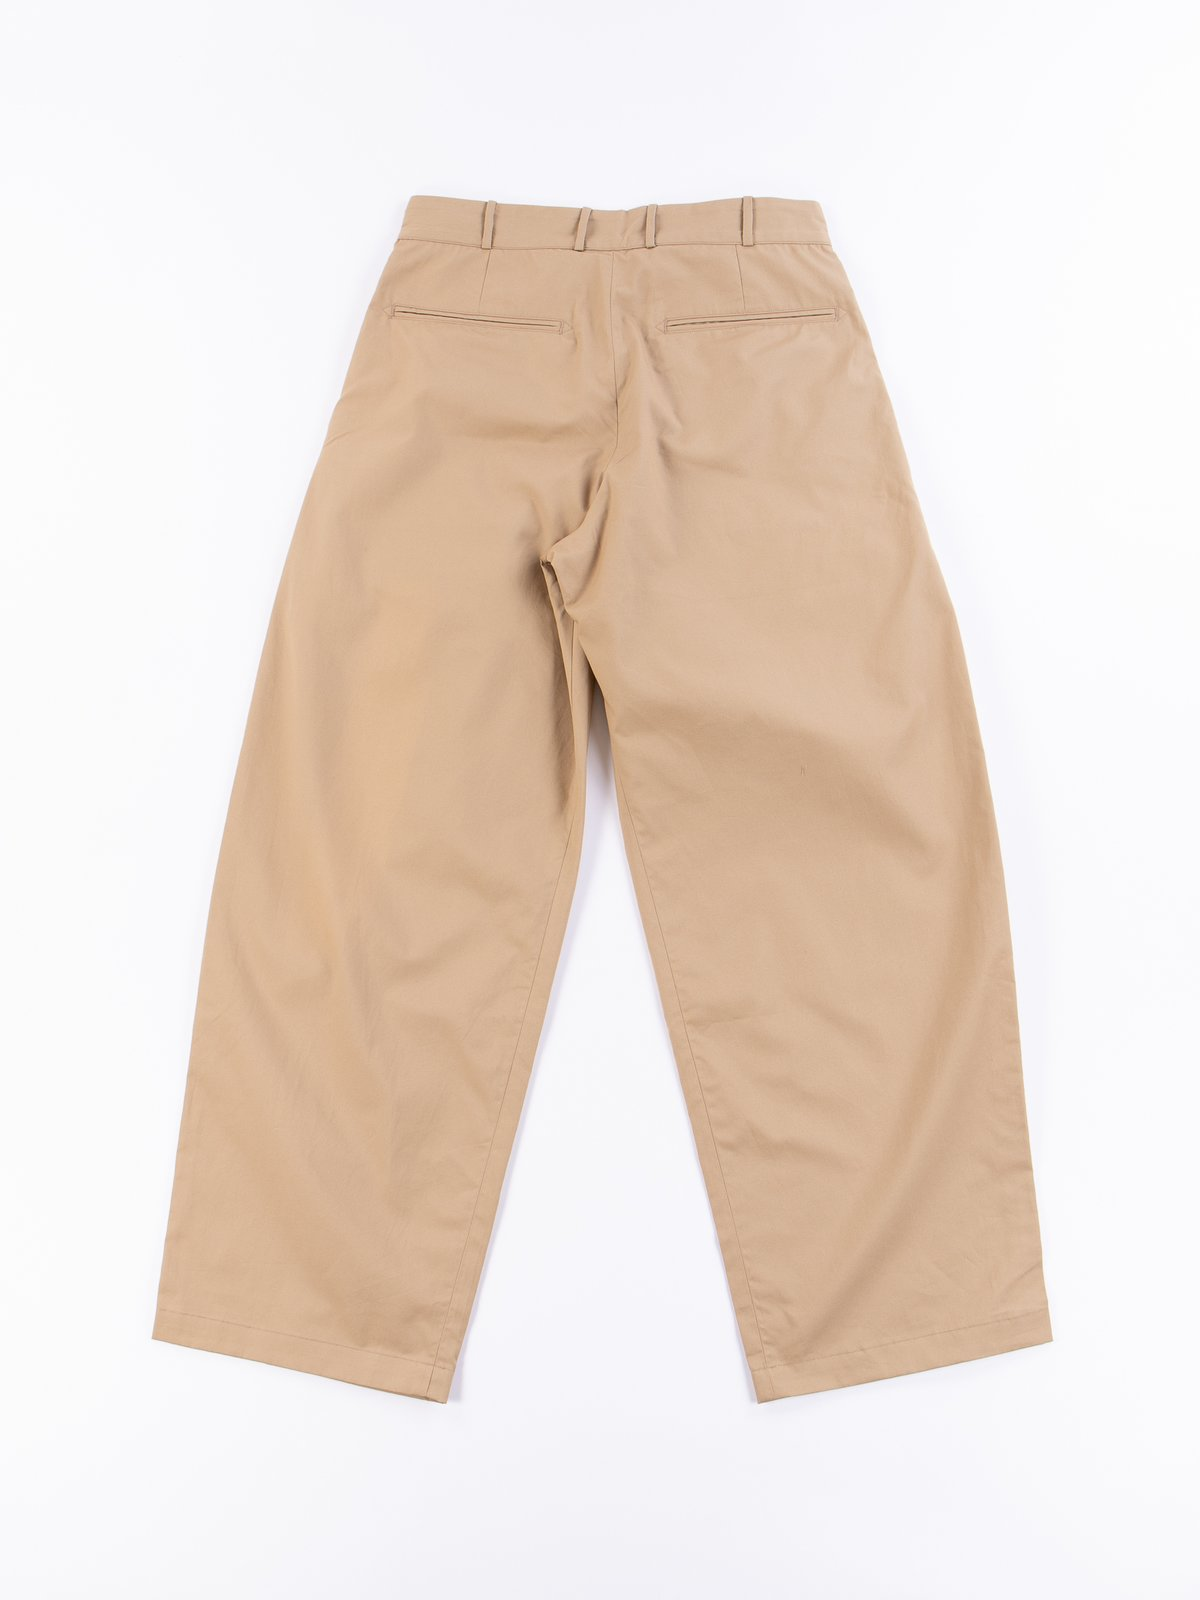 Khaki Oxford Vancloth Triple Tuck Wide Pant - Image 5